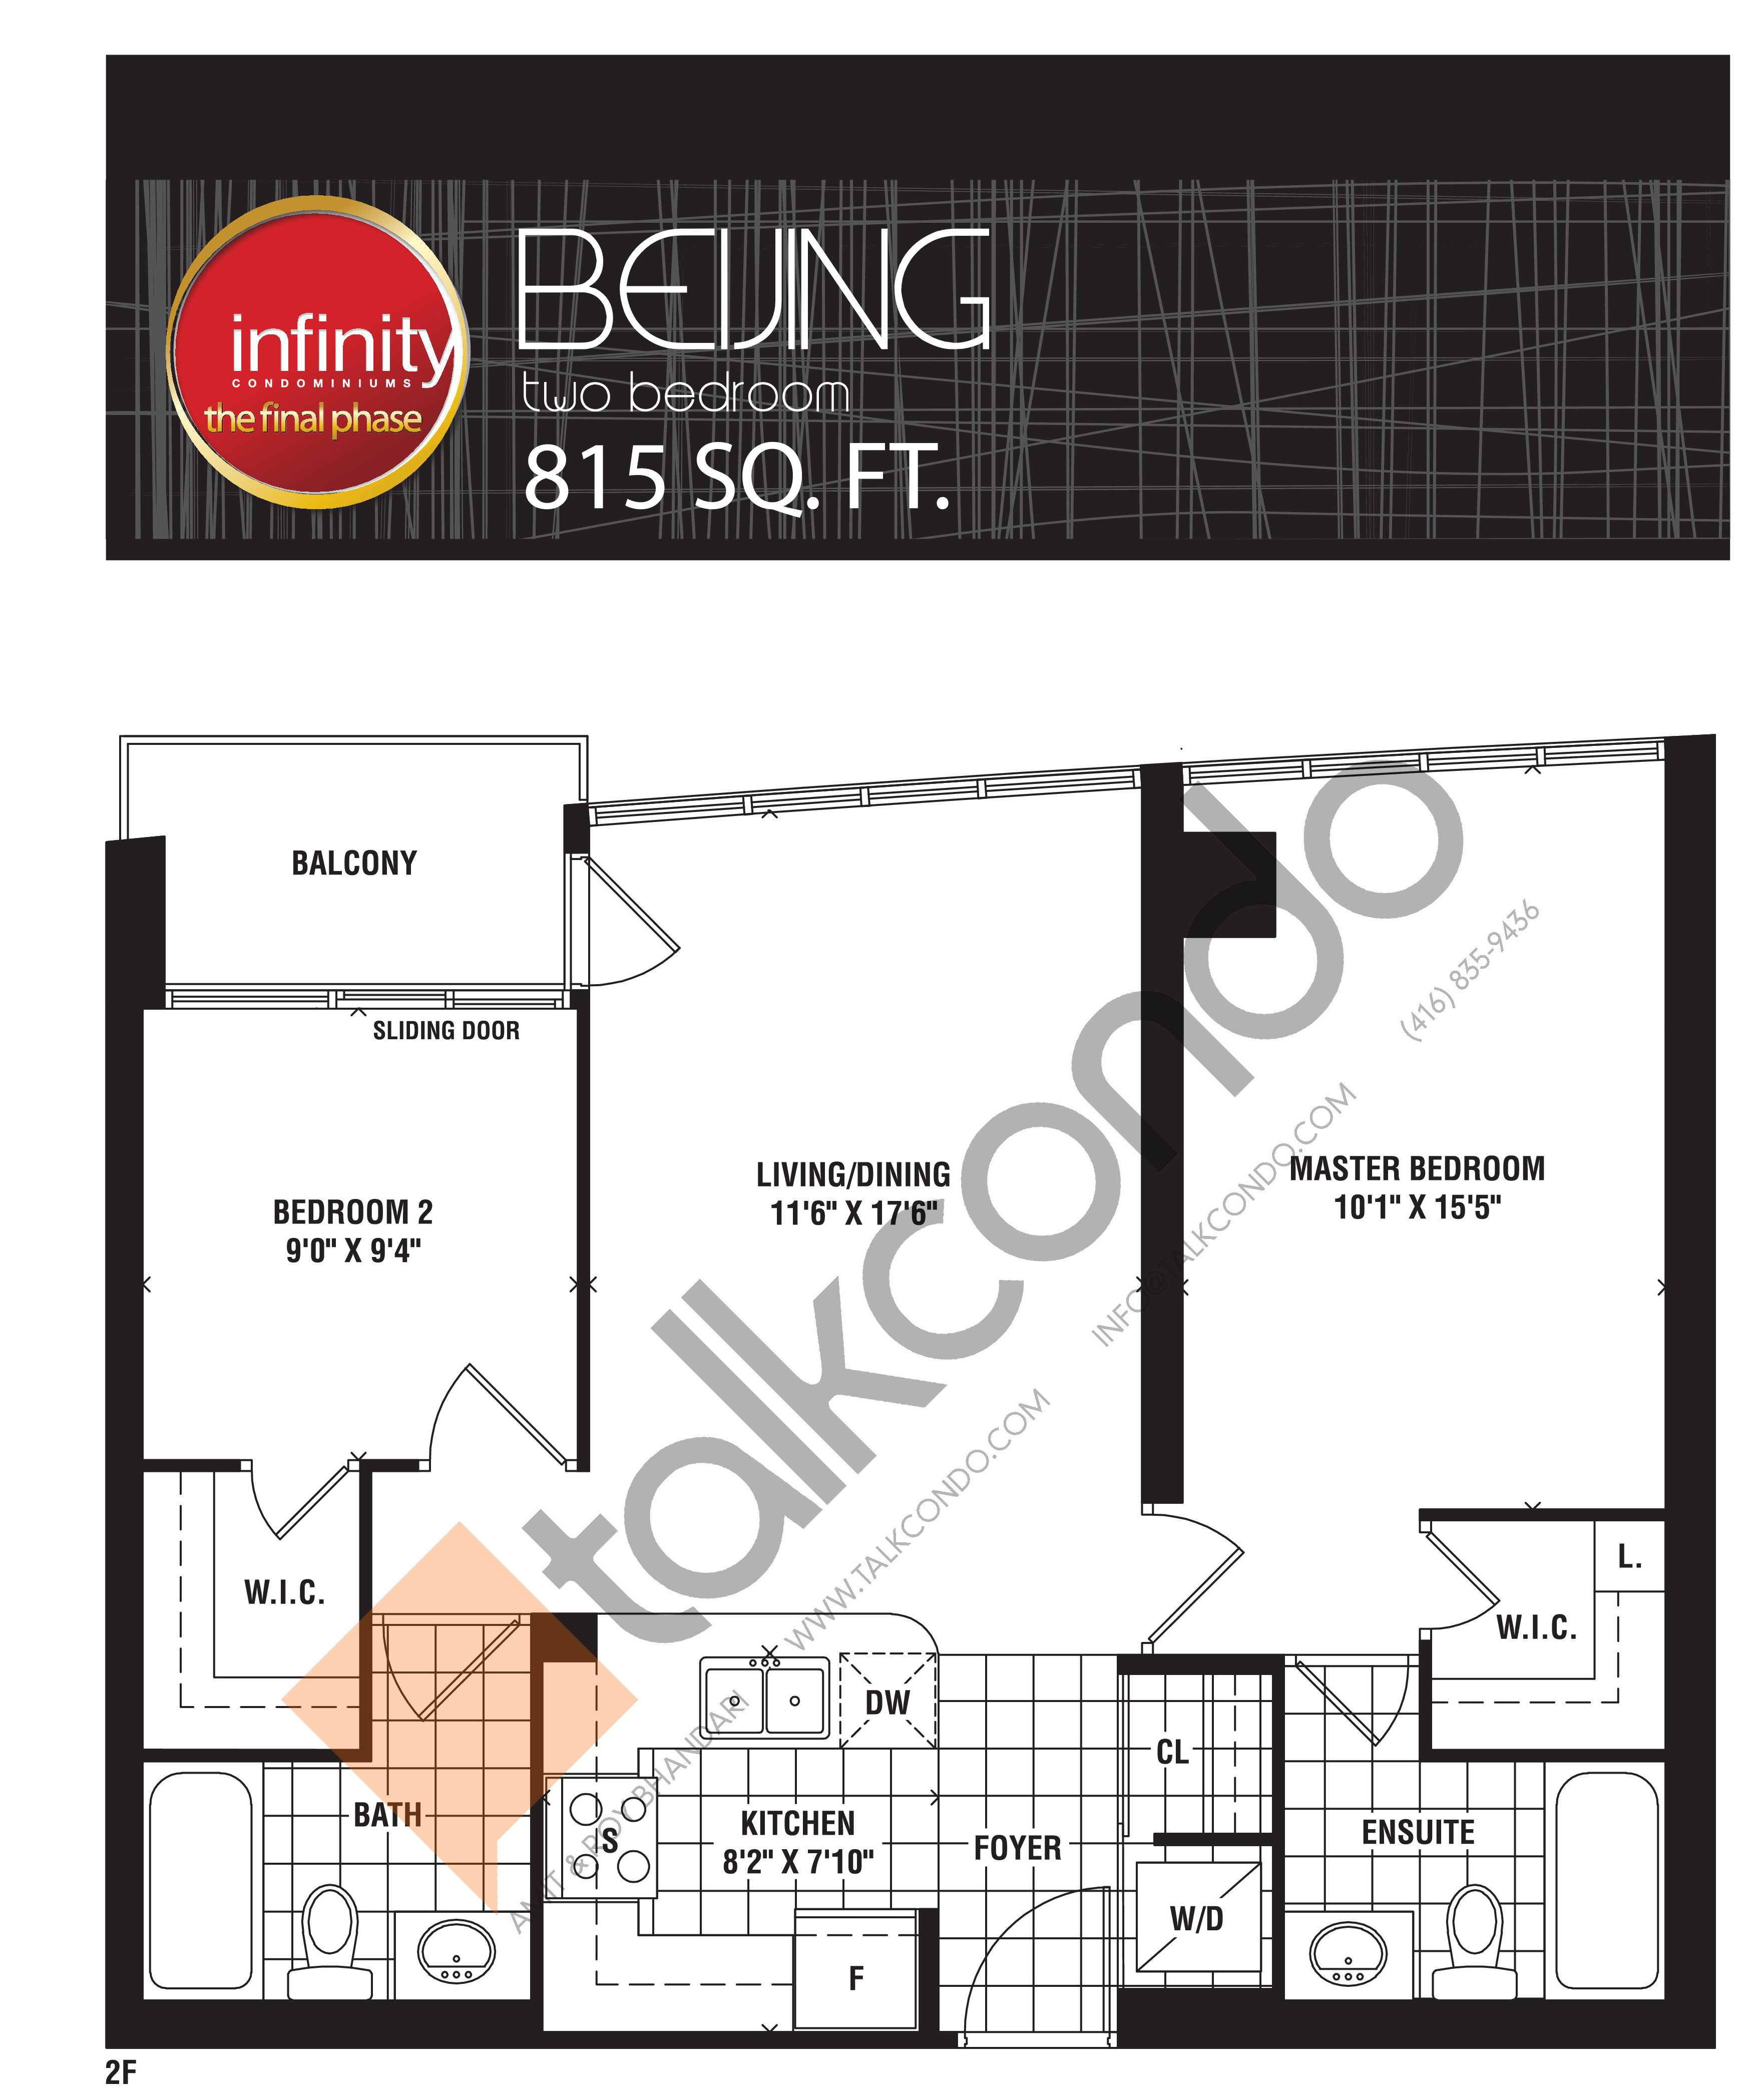 Beijing Floor Plan at Infinity: The Final Phase Condos - 815 sq.ft